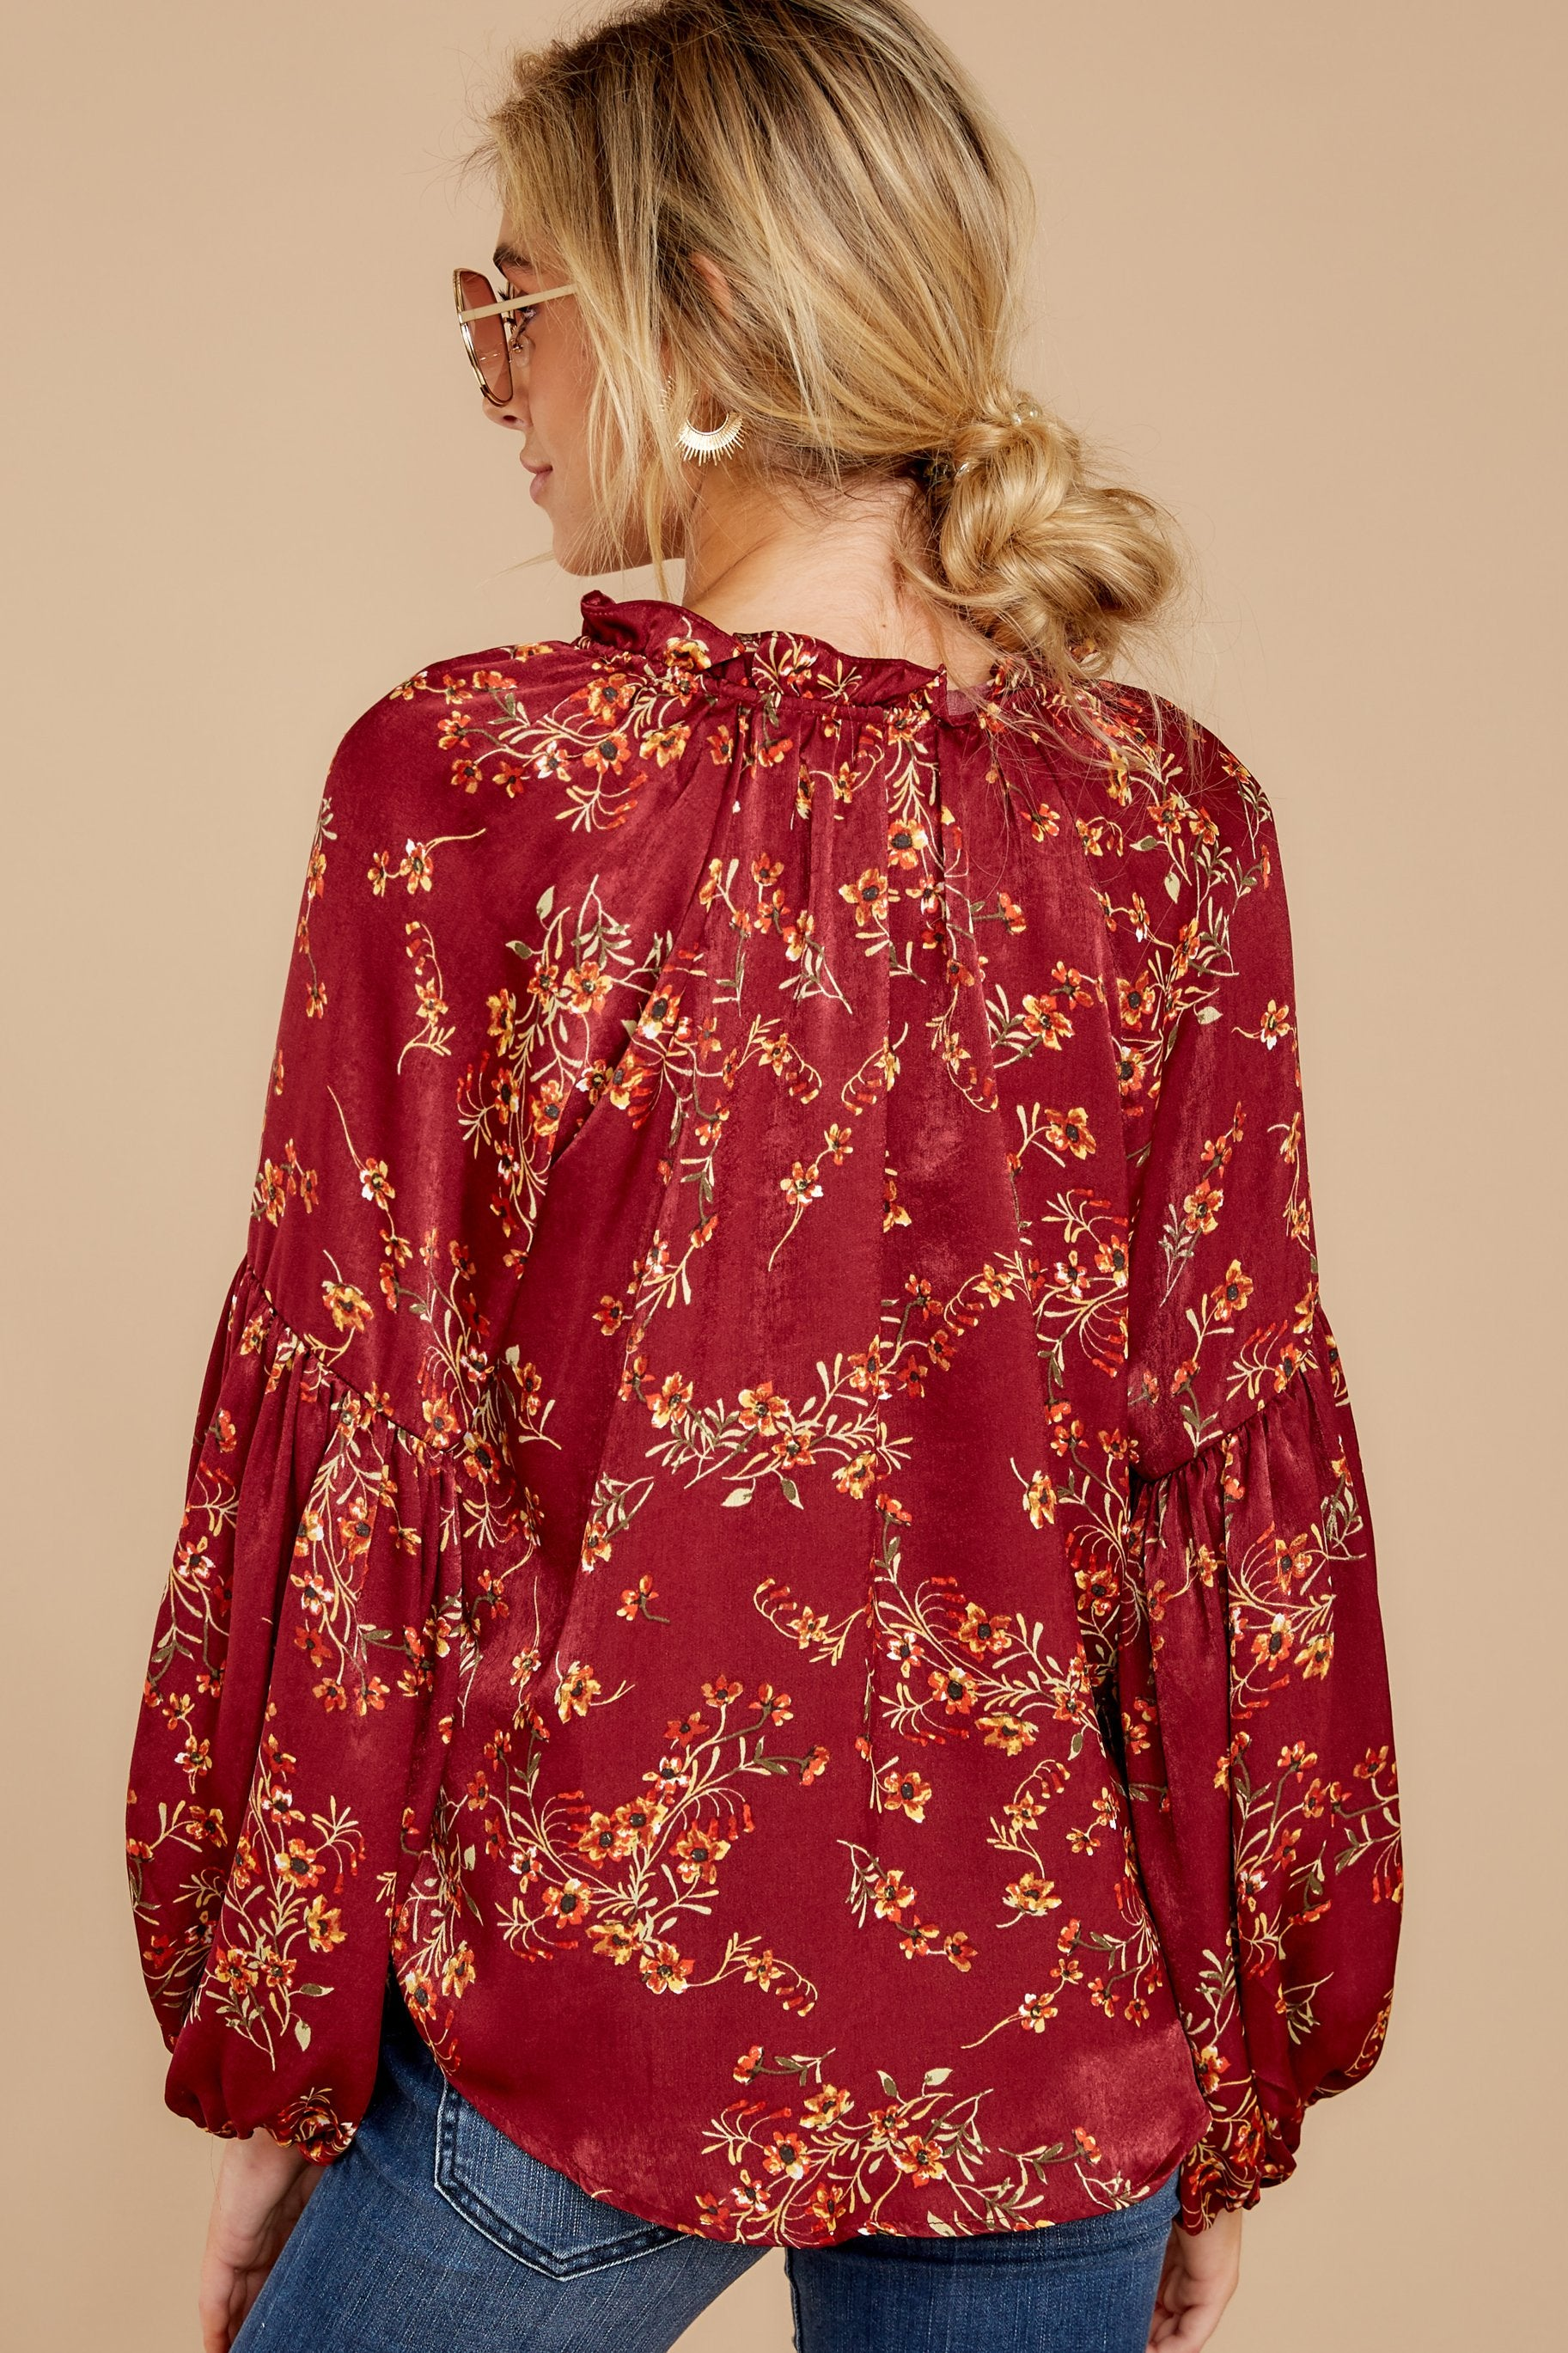 4 Wake Up The Wonder Burgundy Floral Print Top at reddress.com